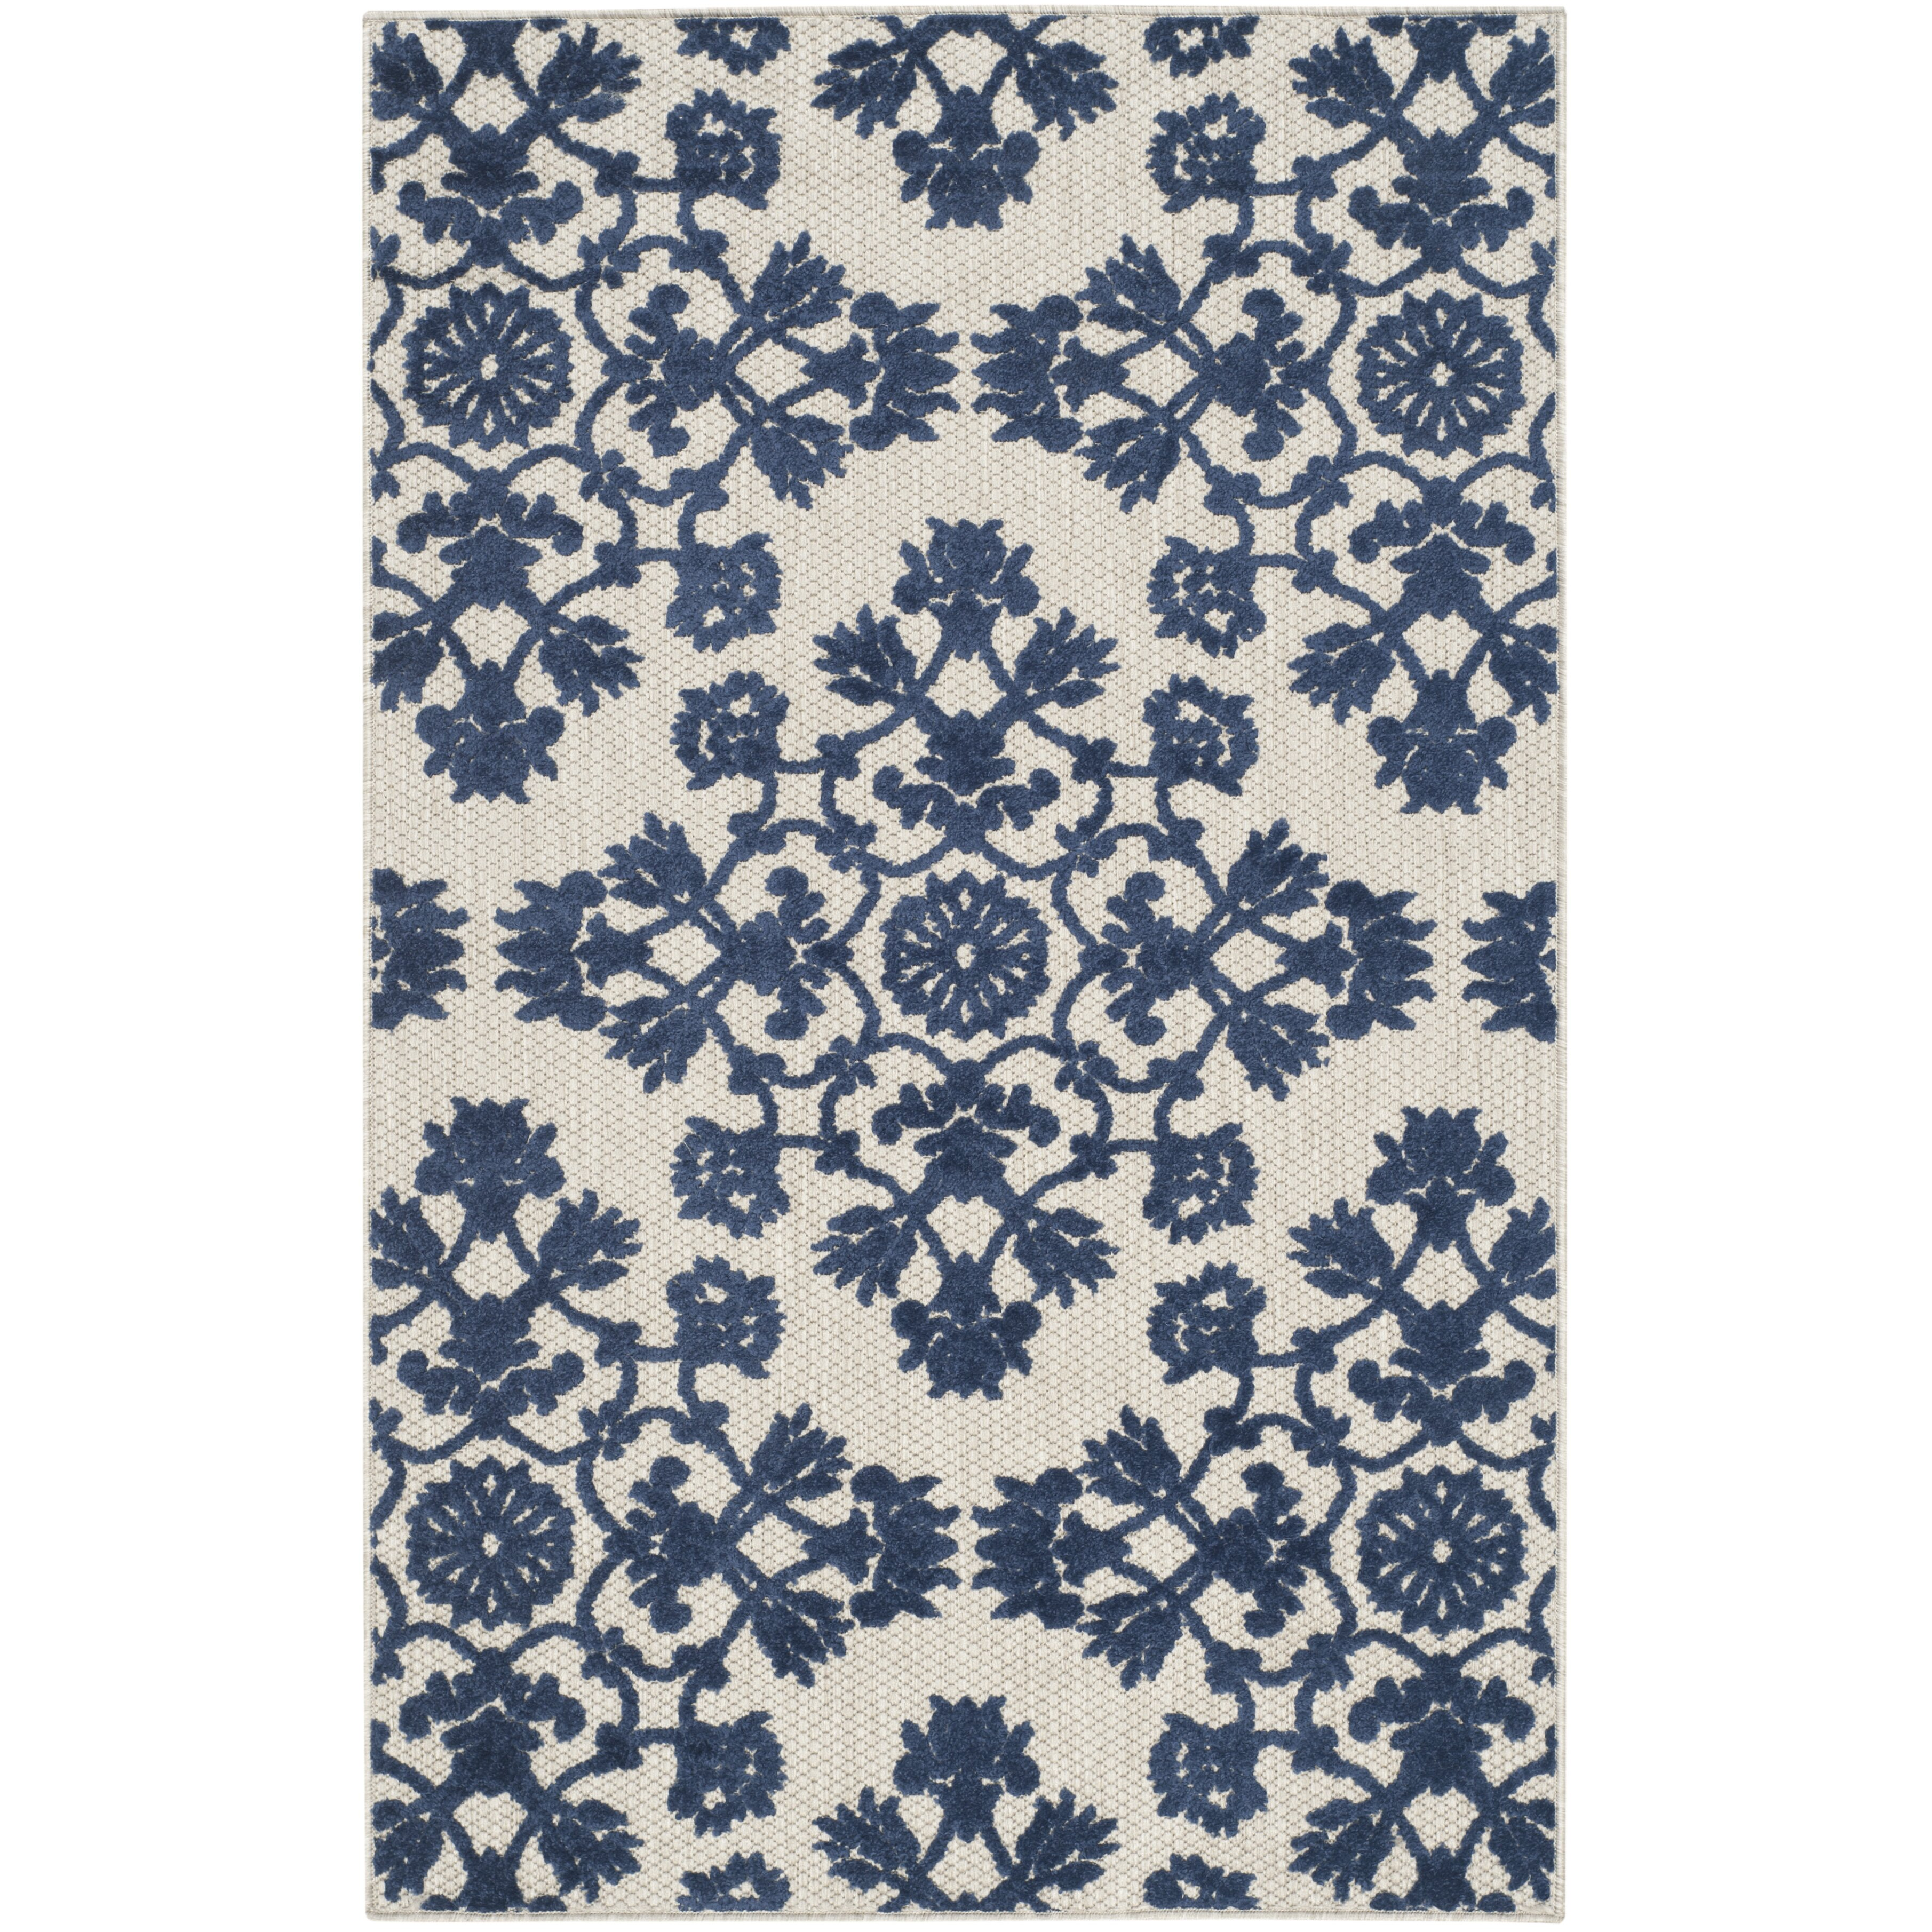 Cottage Light Gray Royal Blue Indoor Outdoor Area Rug